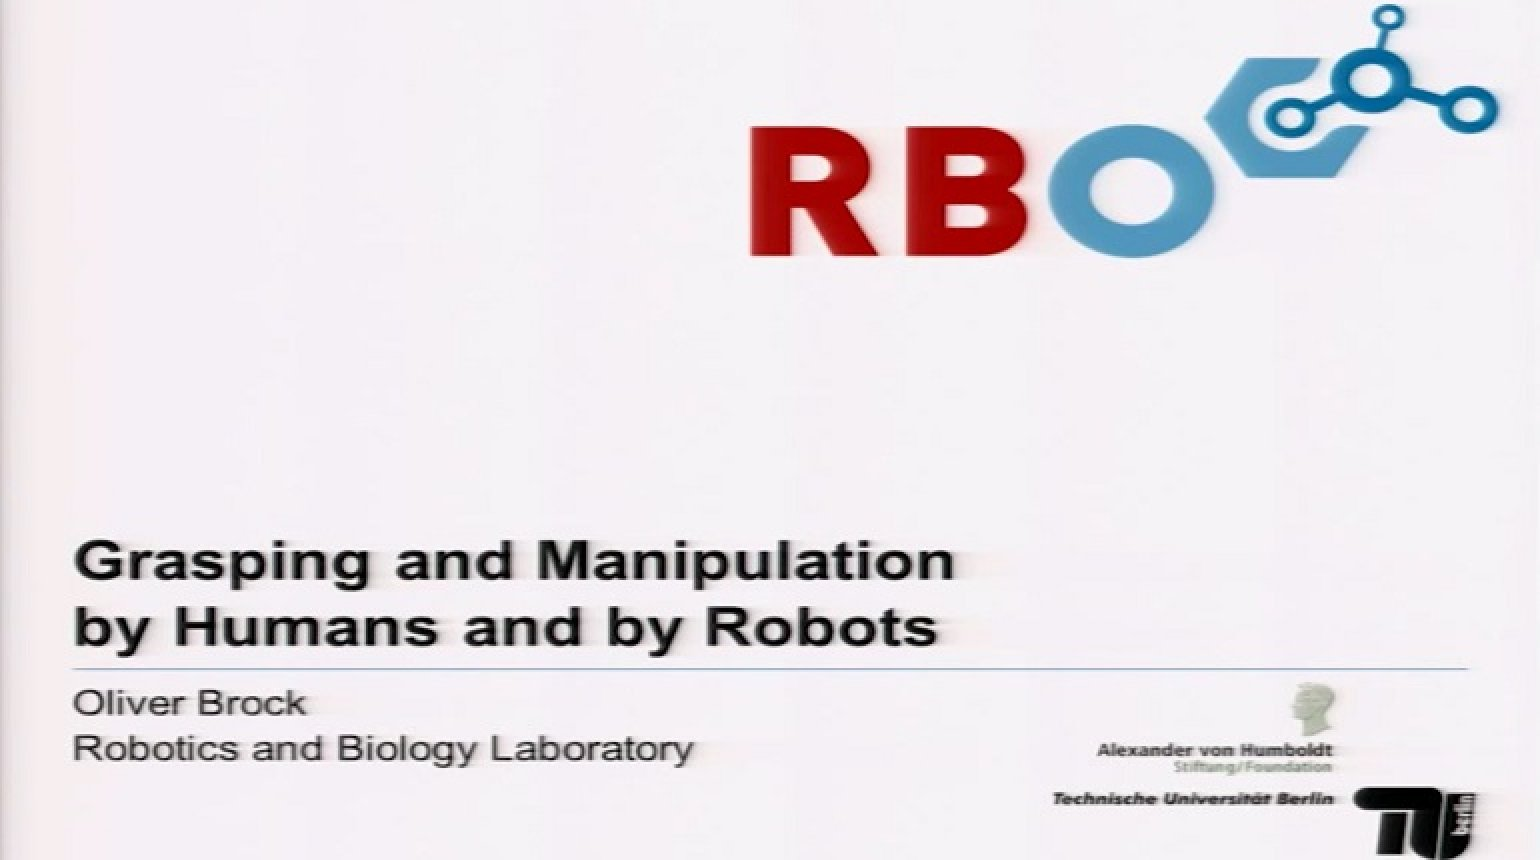 Grasping and Manipulation by Humans and by Robots